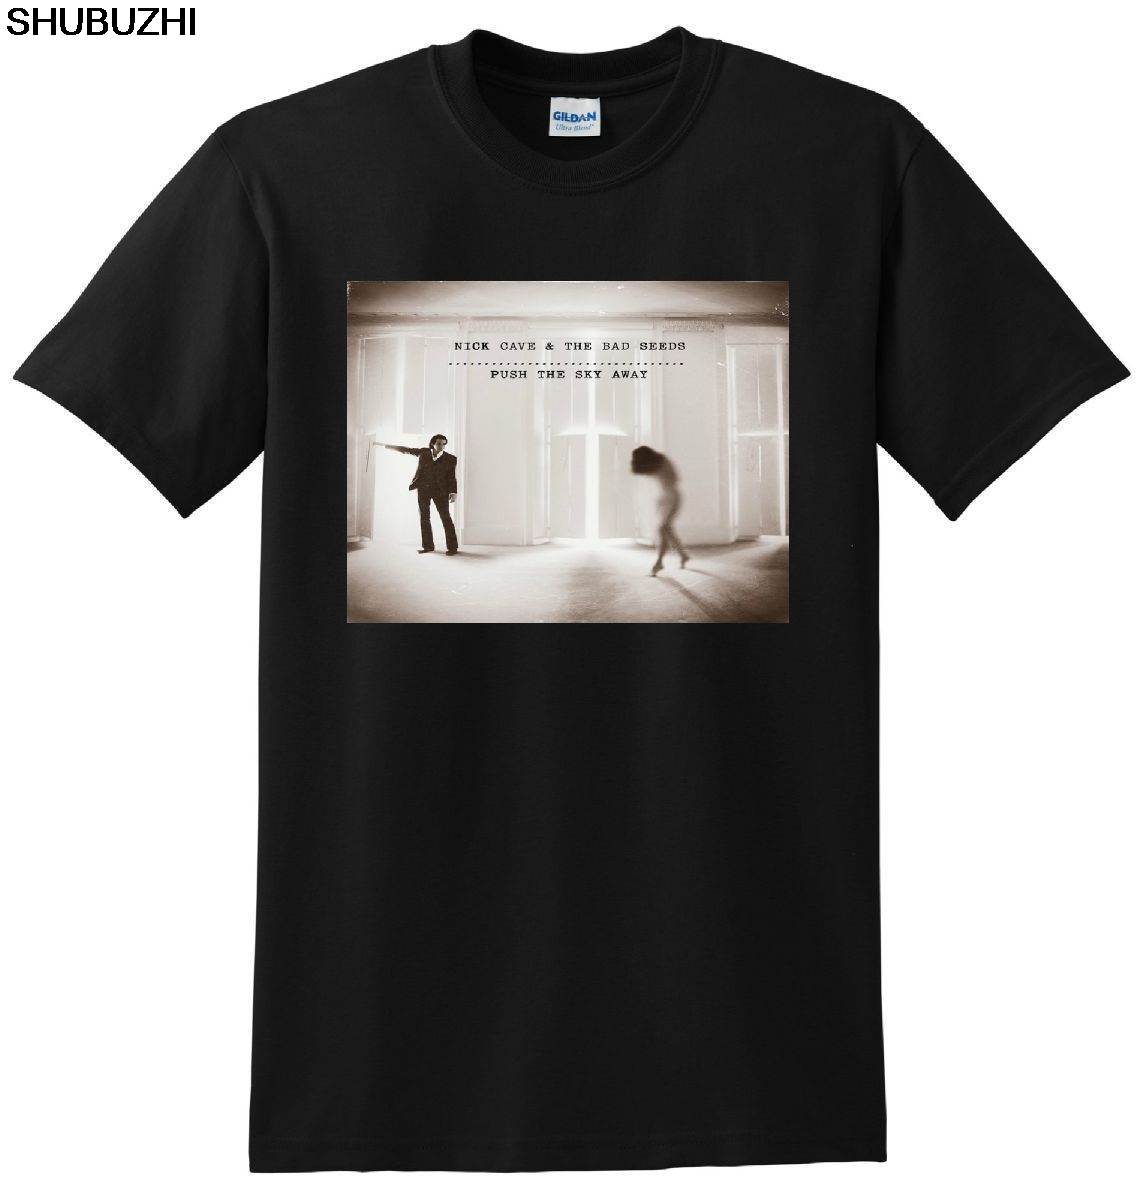 NICK CAVE AND THE BAD SEEDS T SHIRT Push The Sky Away  Short Sleeves Cotton T-Shirt Fashion Design Free Shipping